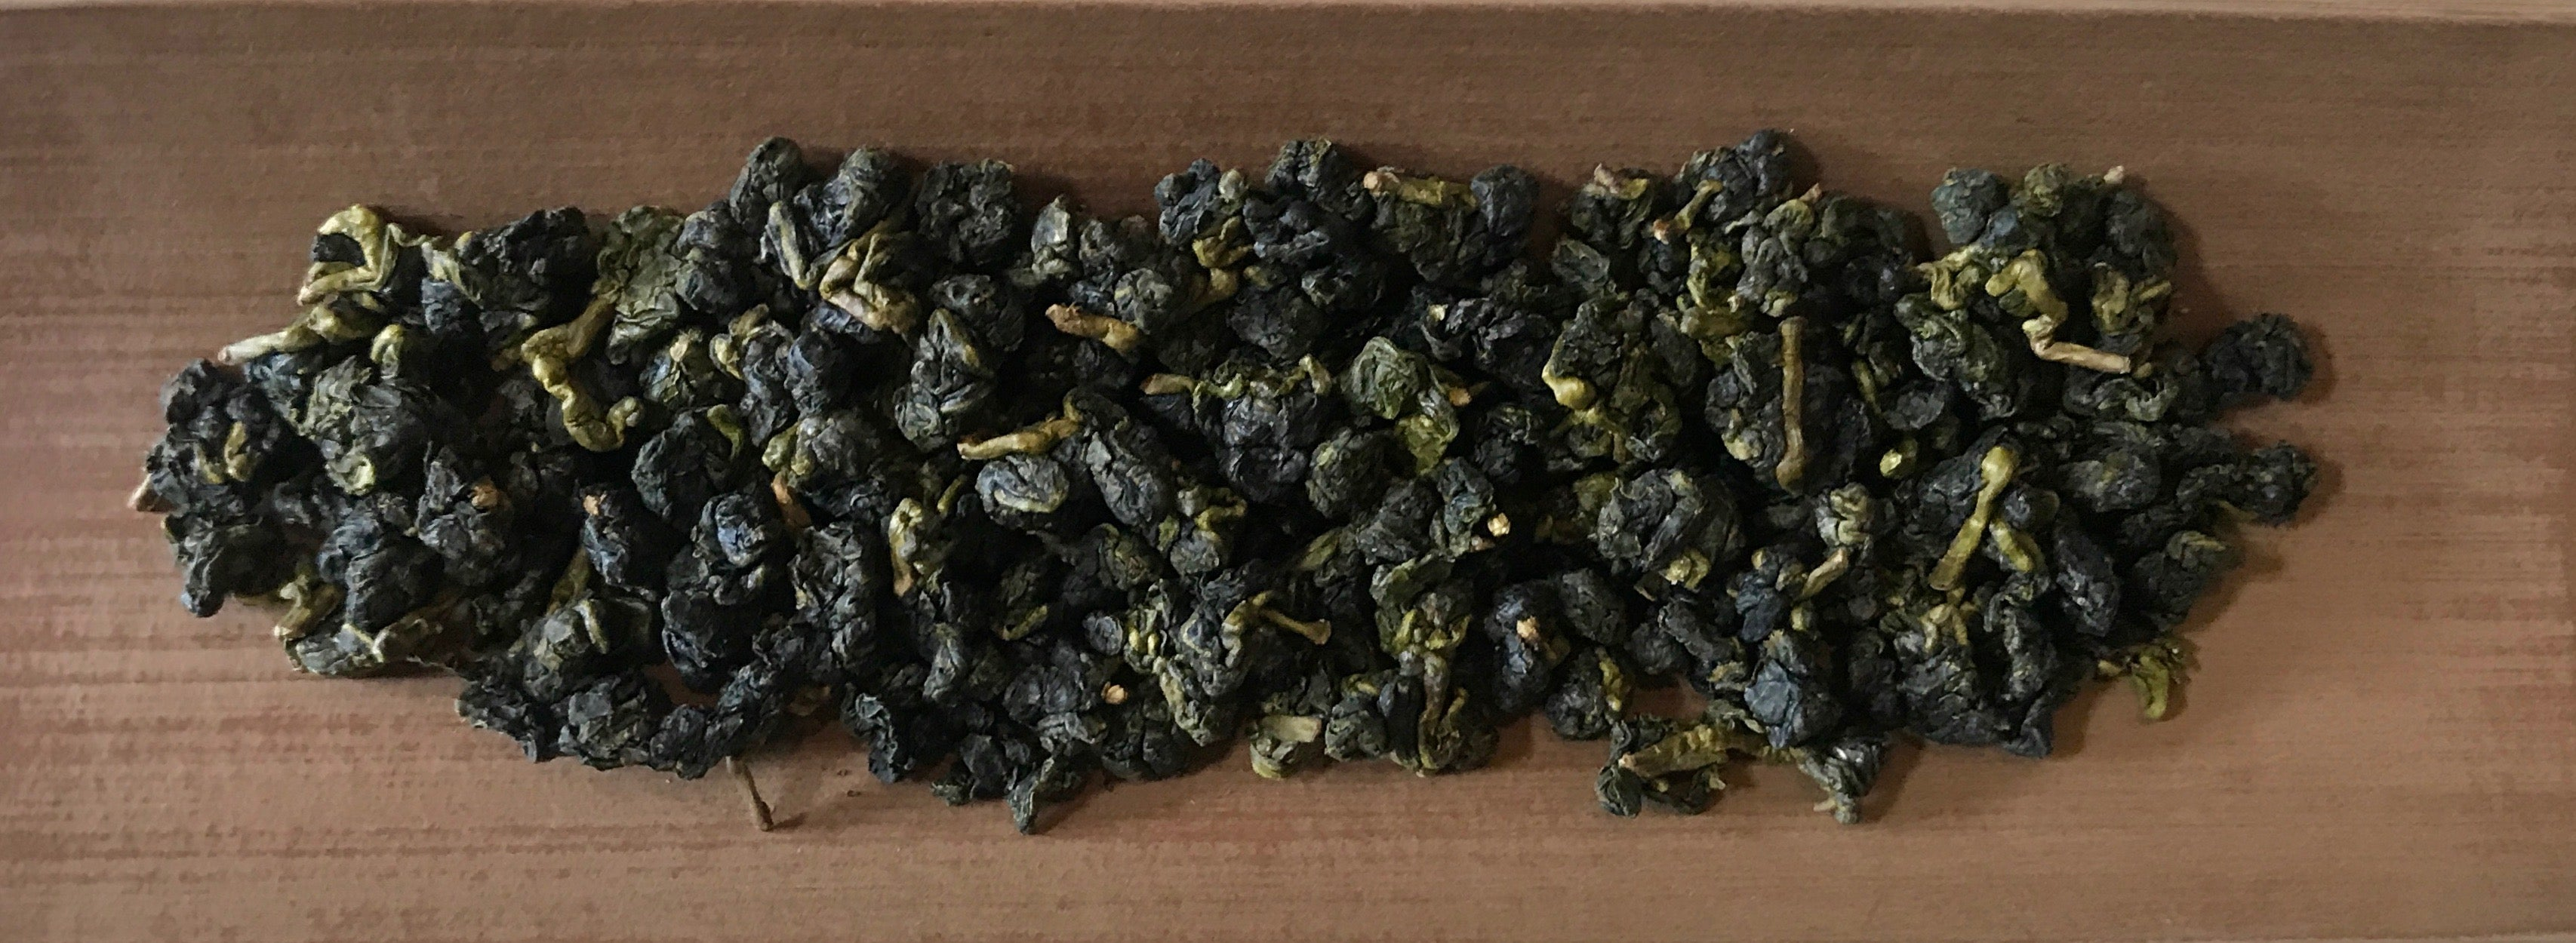 Eco-Cha Tea Club Light Roast Phoenix Village Oolong -  tea leaves